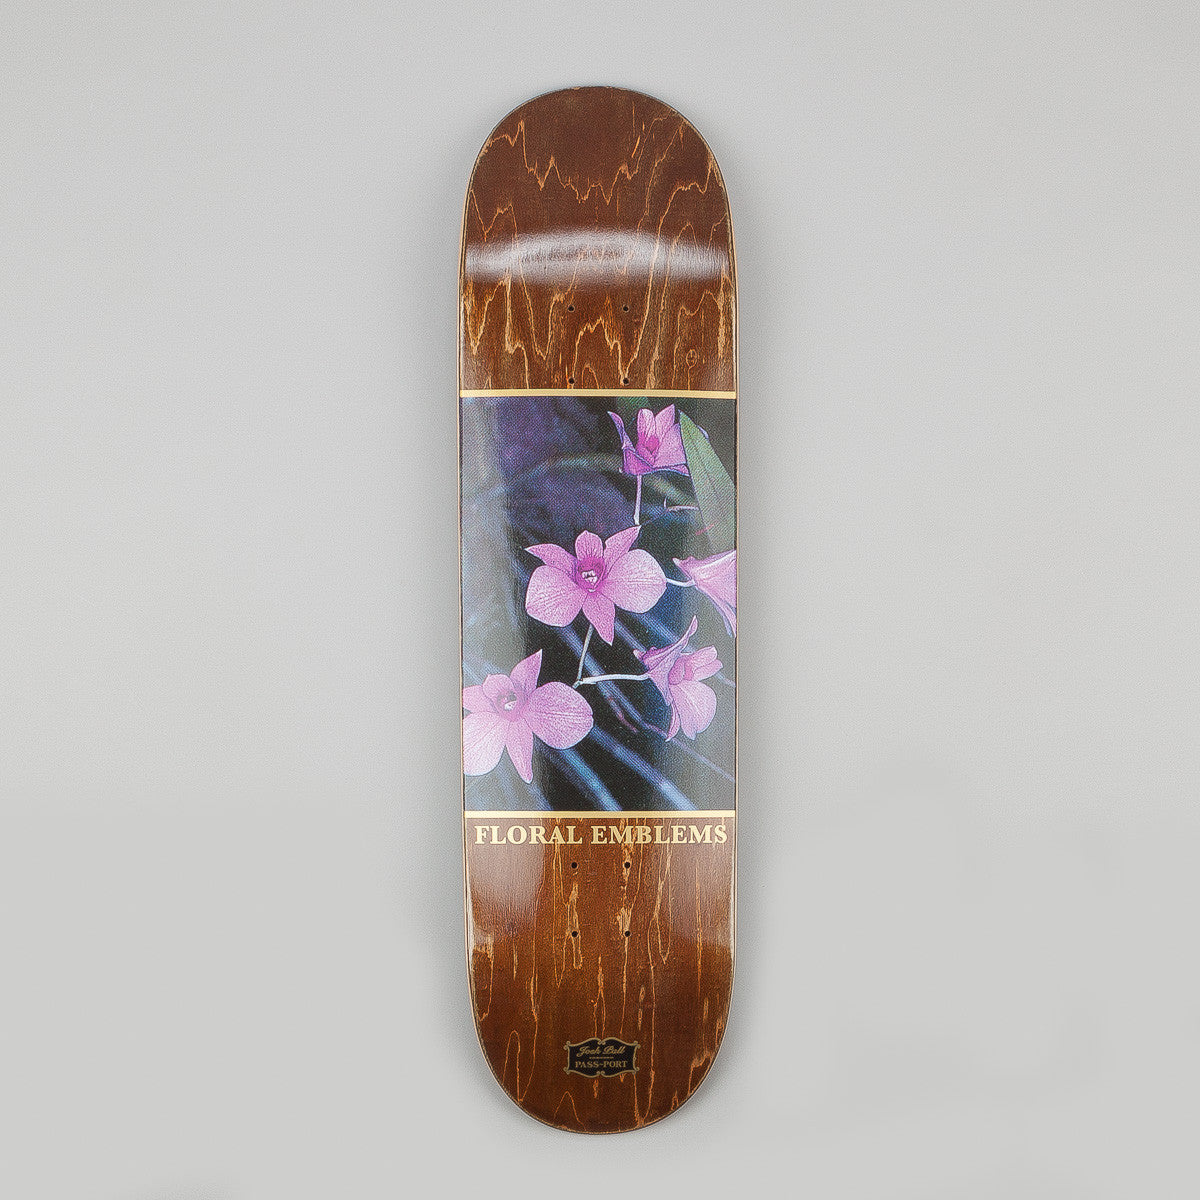 Pass Port Floral Emblems Josh Pall Deck